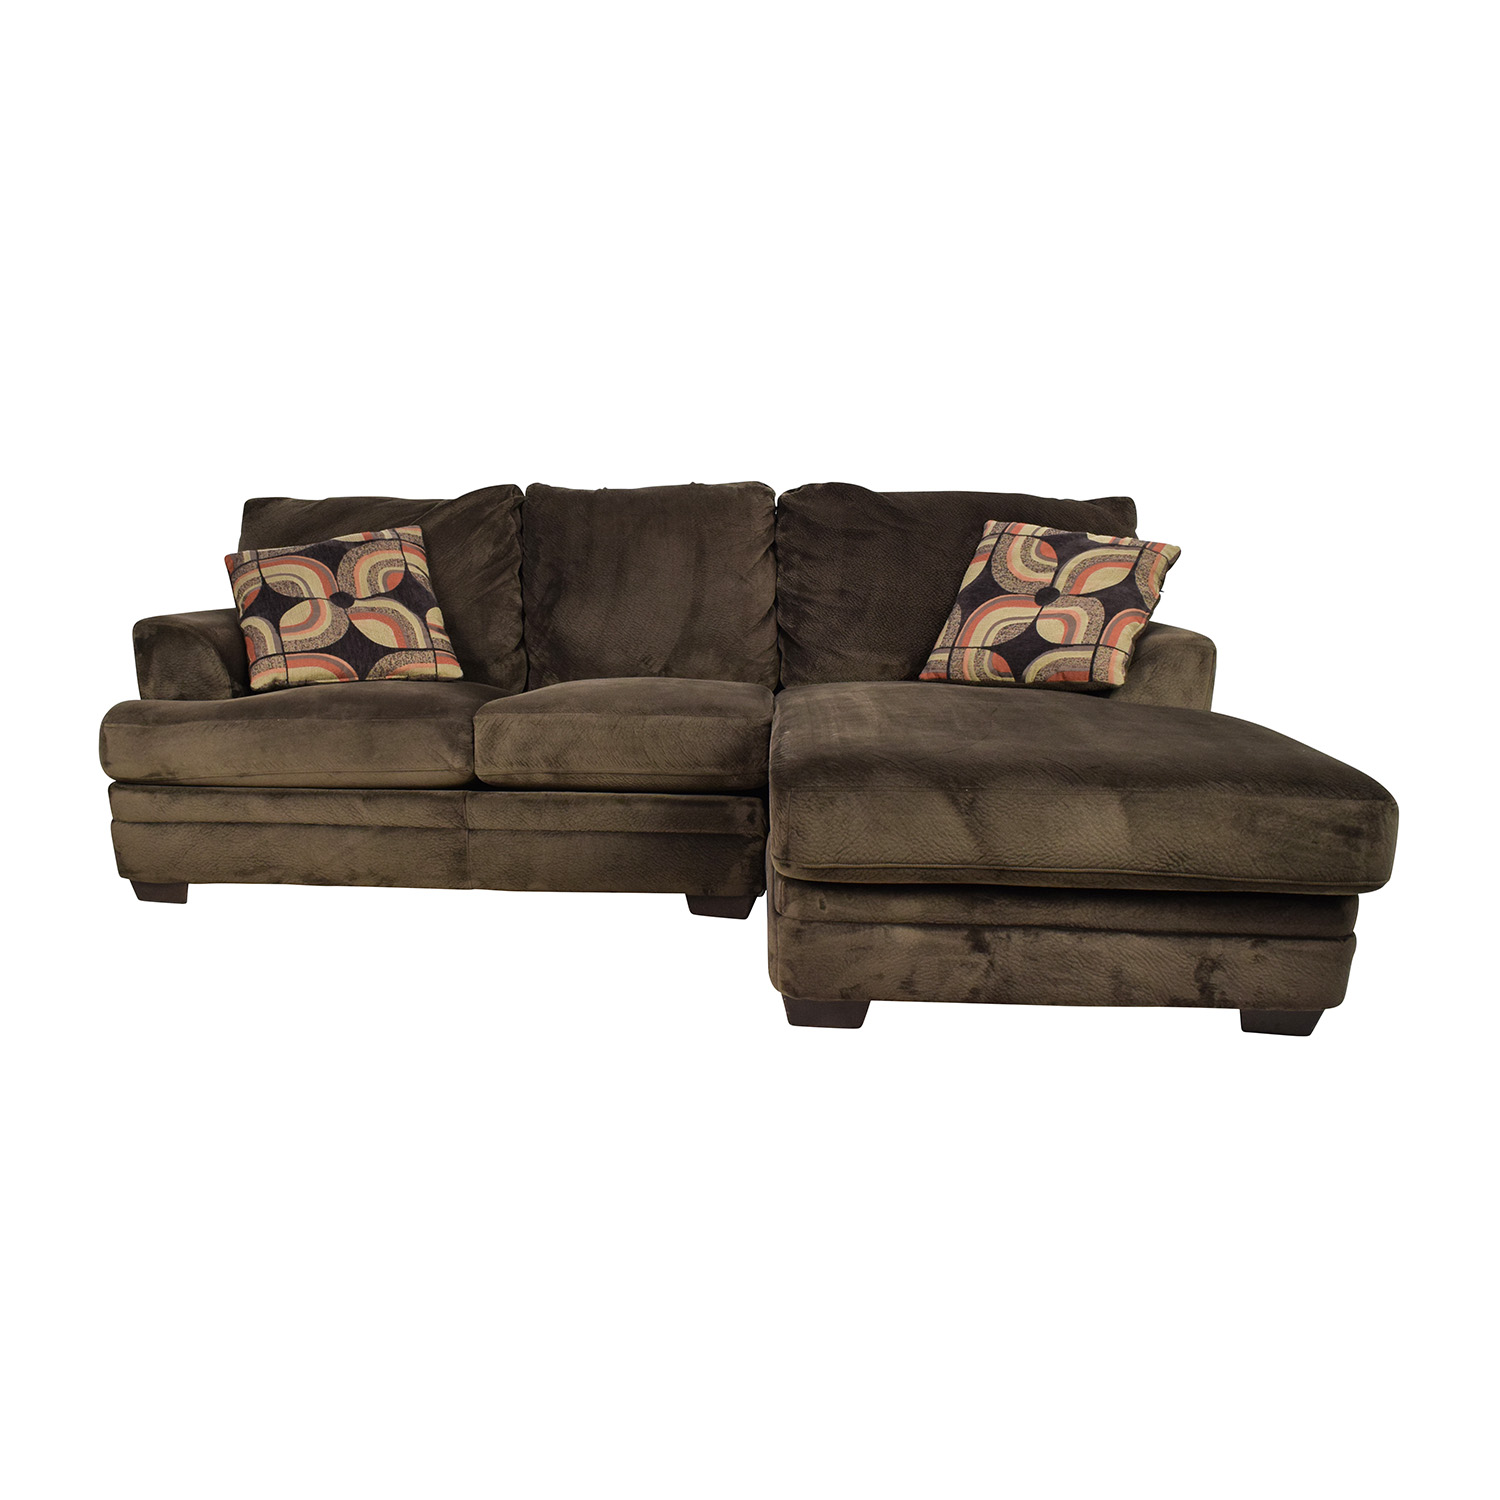 60 Off Brown Corduroy L Shaped Sectional Couch Sofas  sc 1 st  Centerfieldbar.com : bobs sectionals - Sectionals, Sofas & Couches